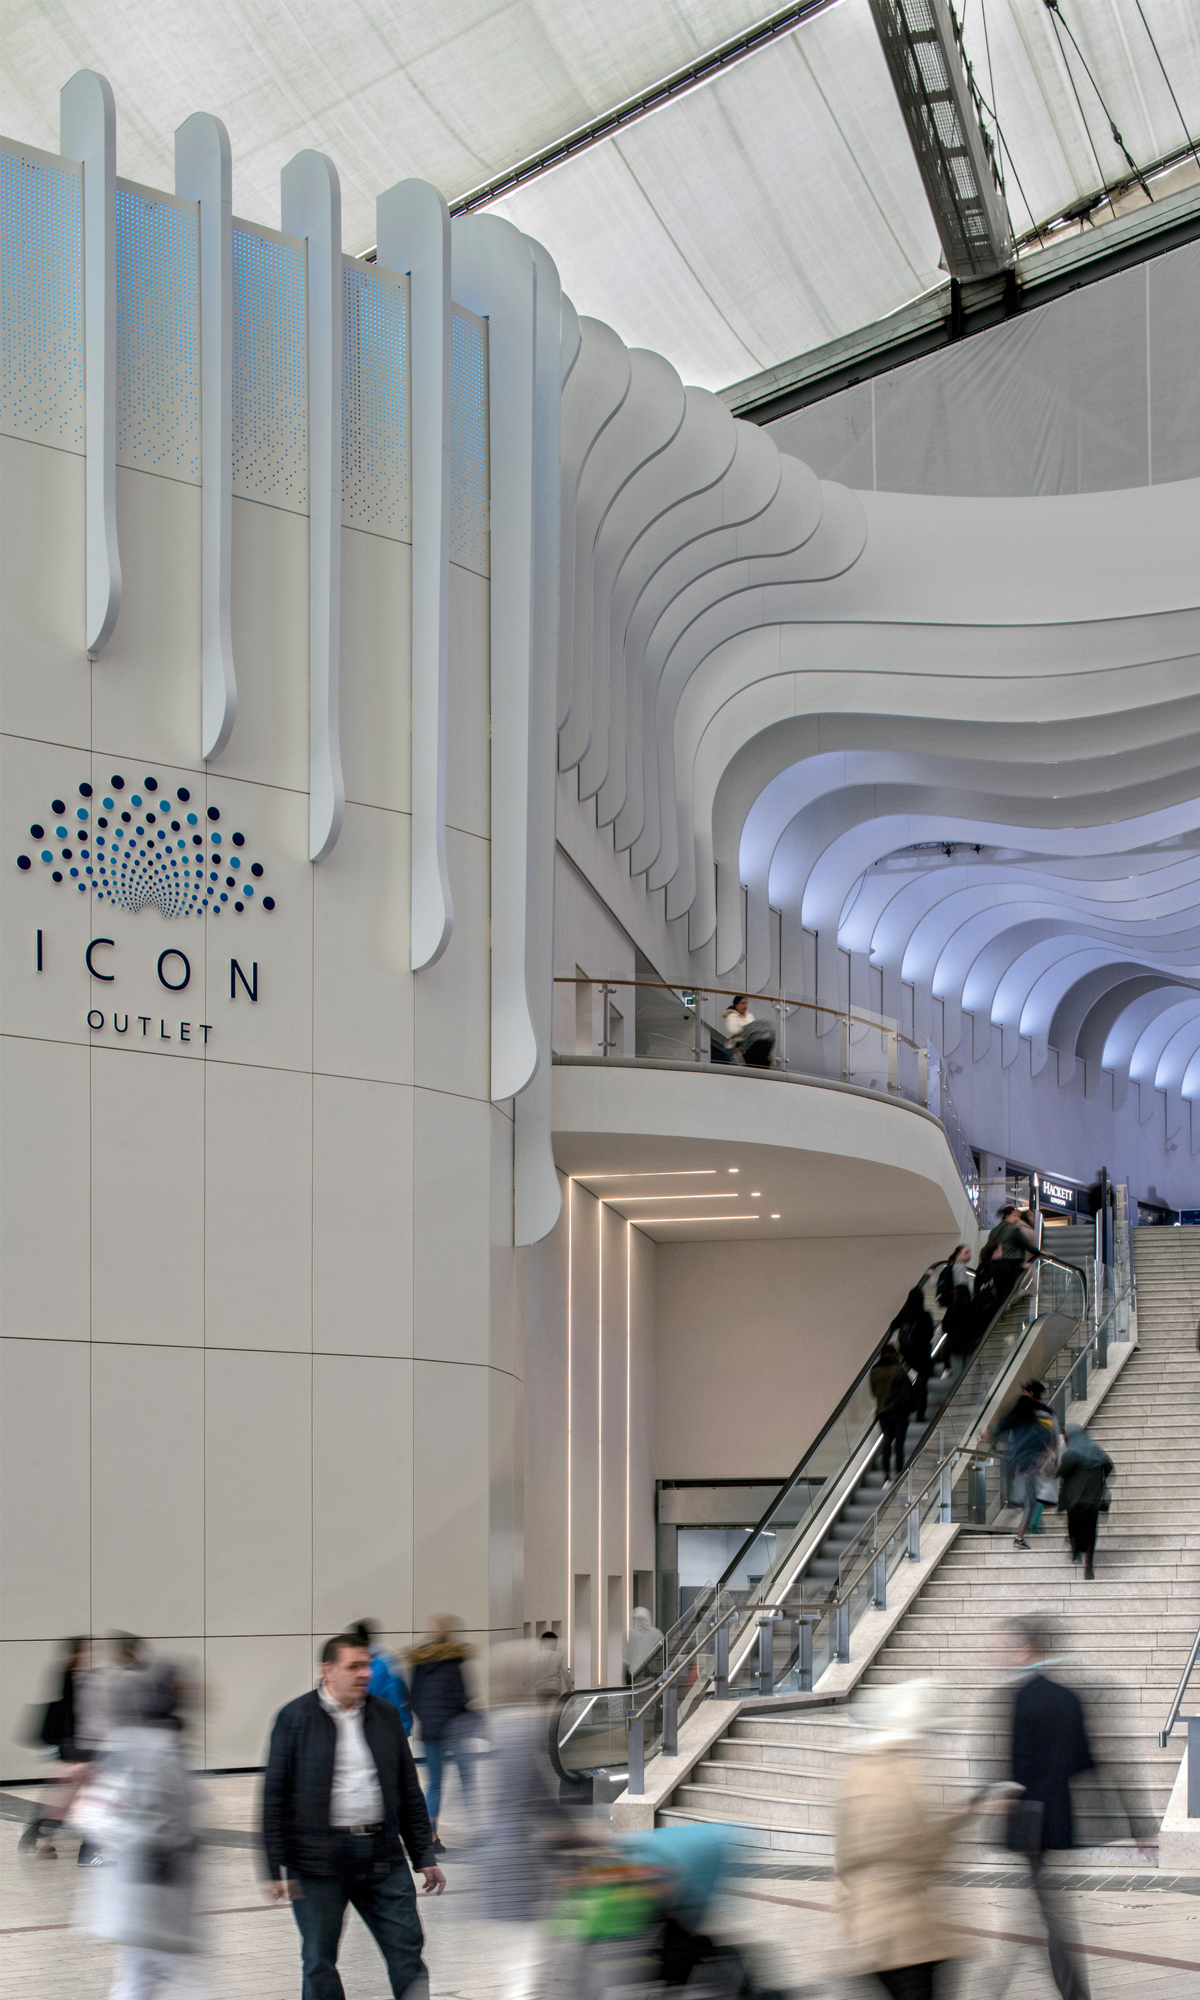 Icon Outlet The O2